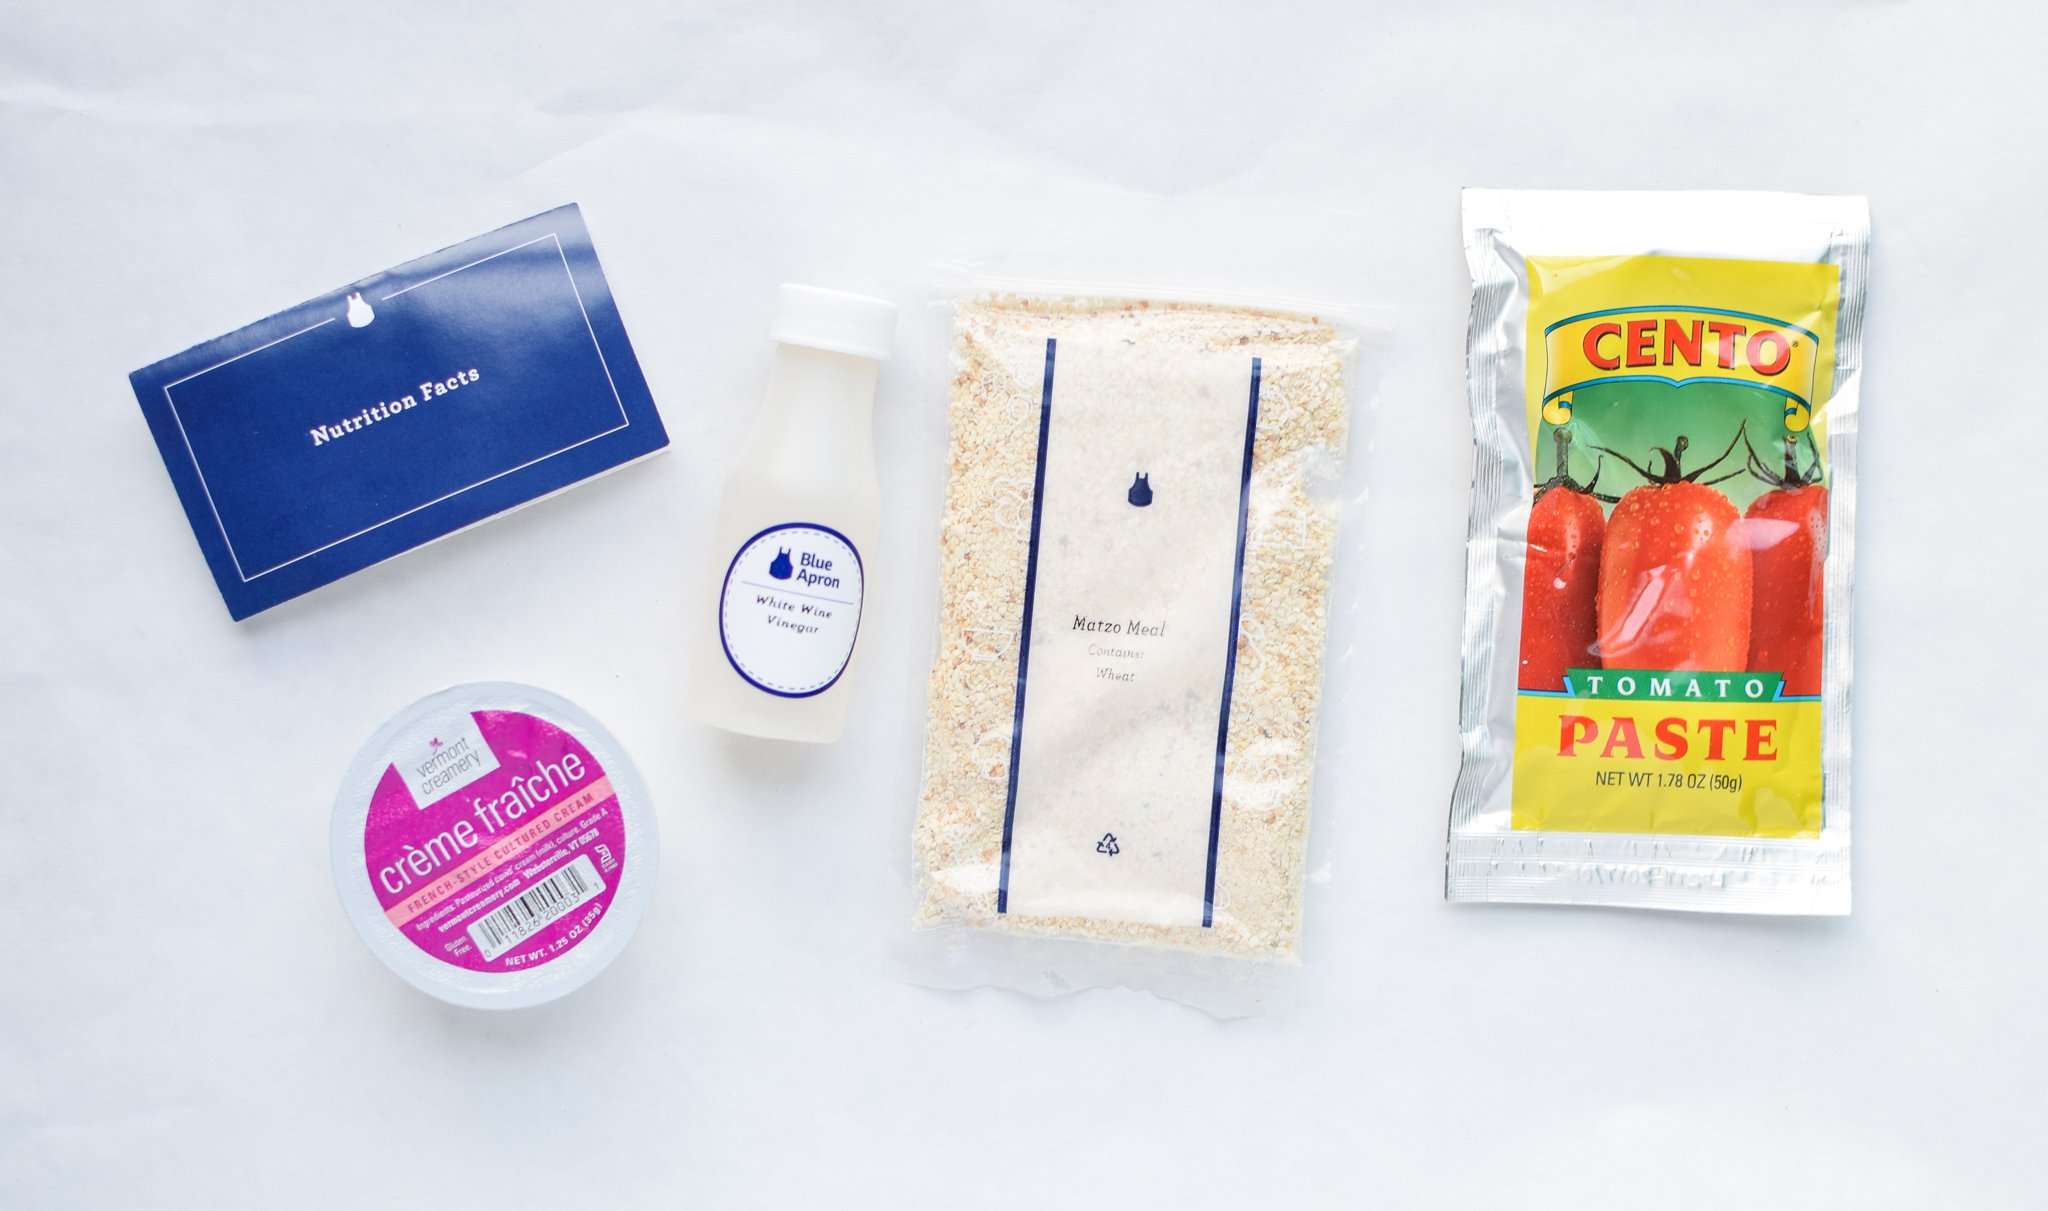 Blue Apron Meal Delivery Service Review - Pictures and discussion on the popular meal delivery service Blue Apron. - ProjectMealPlan.com